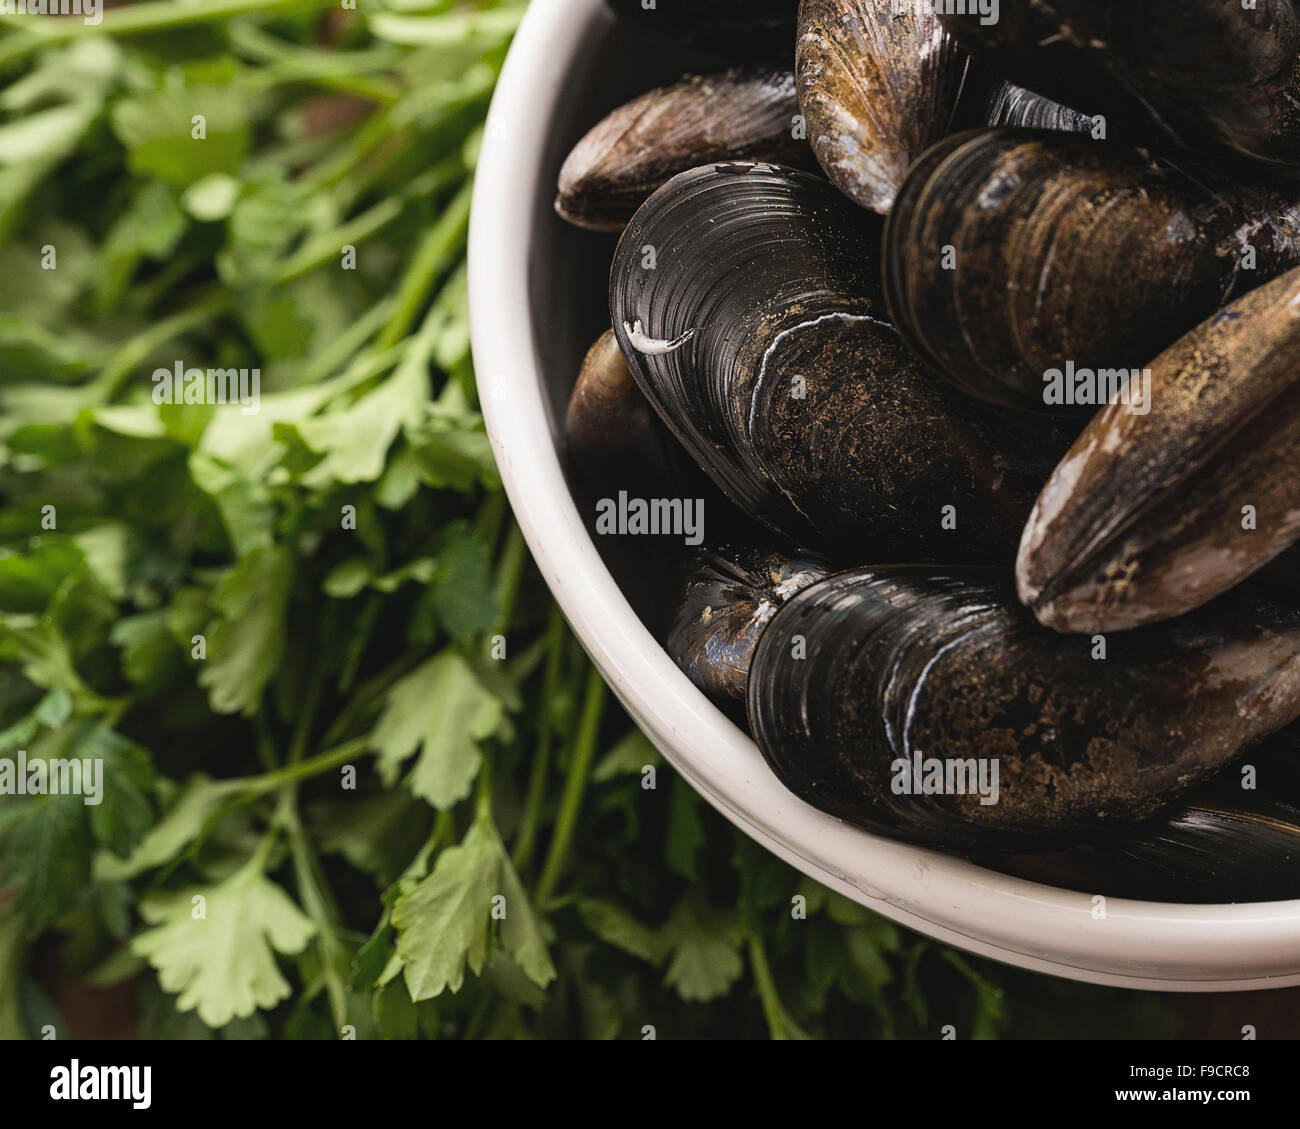 Mussels ready to be cooked presented with some of their ingredients - Stock Image